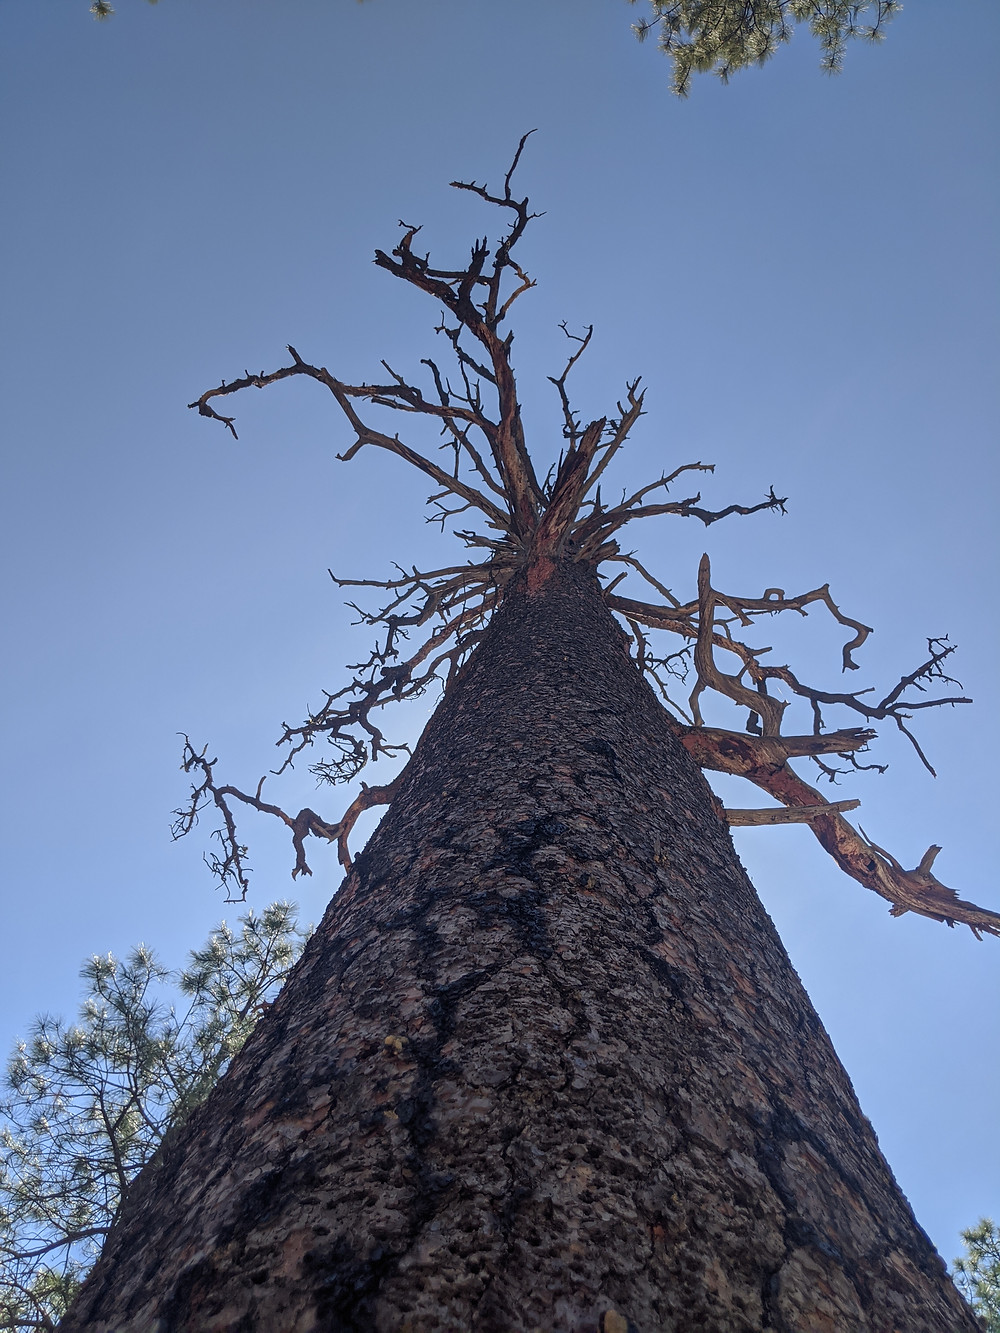 perspective of a large tree standing up, looking at it from the ground up with blue skies behind